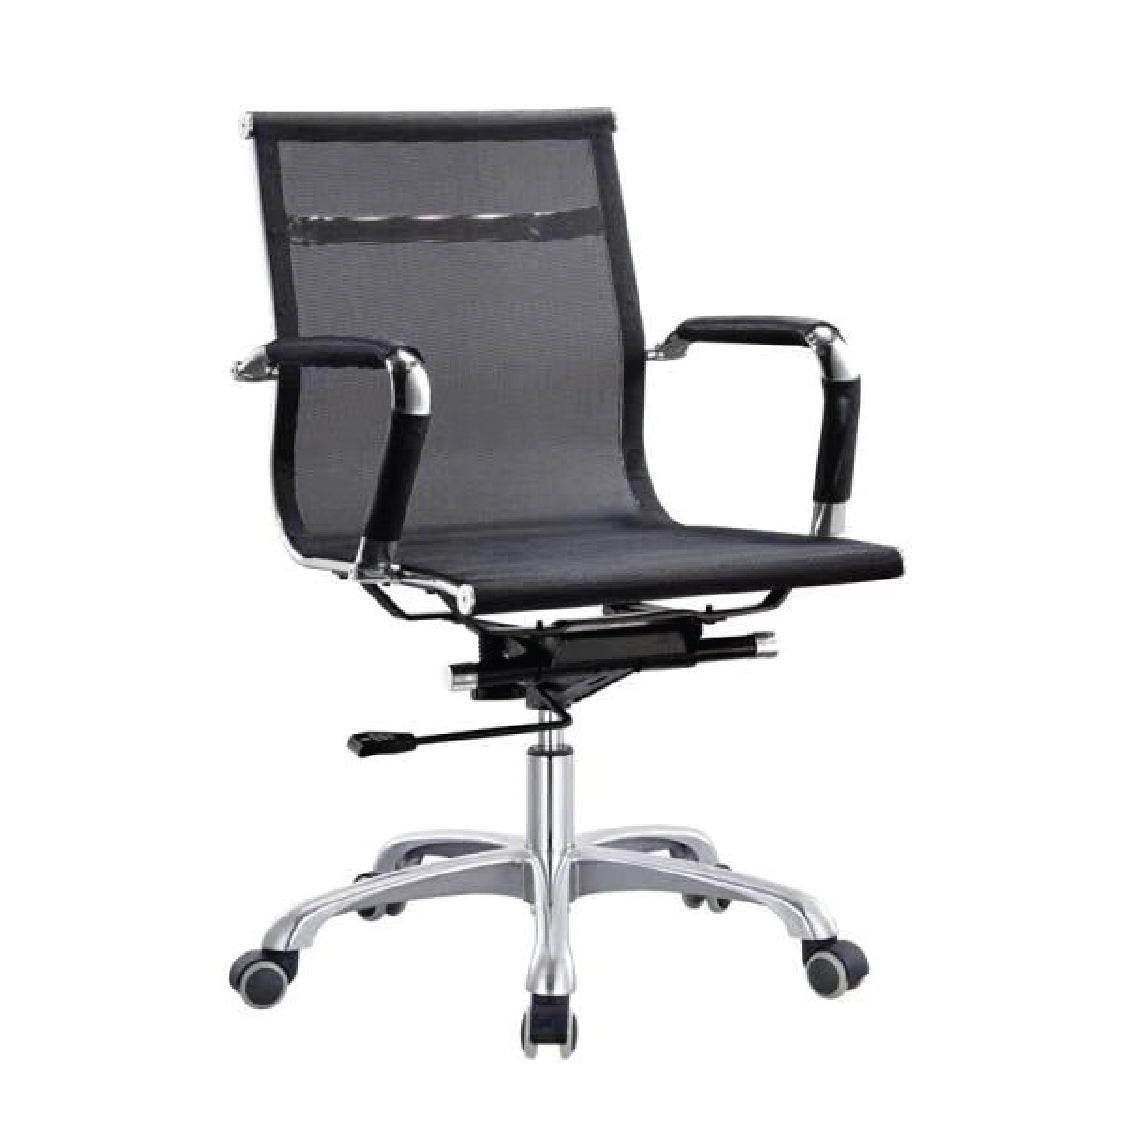 MATRIC BLACK LB Computer Chair